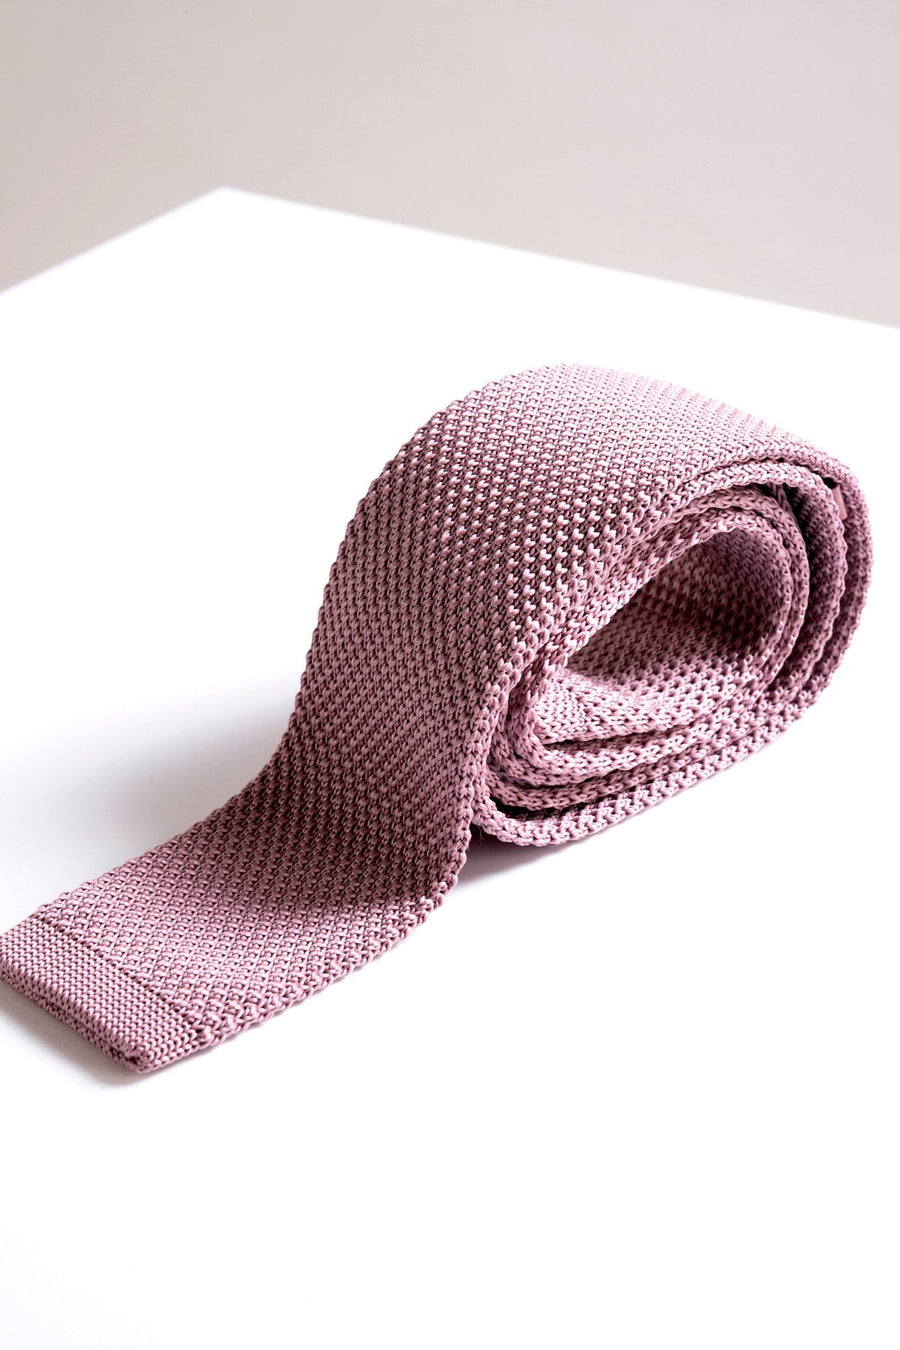 KT Pink Knitted Tie - Wedding Suit Direct